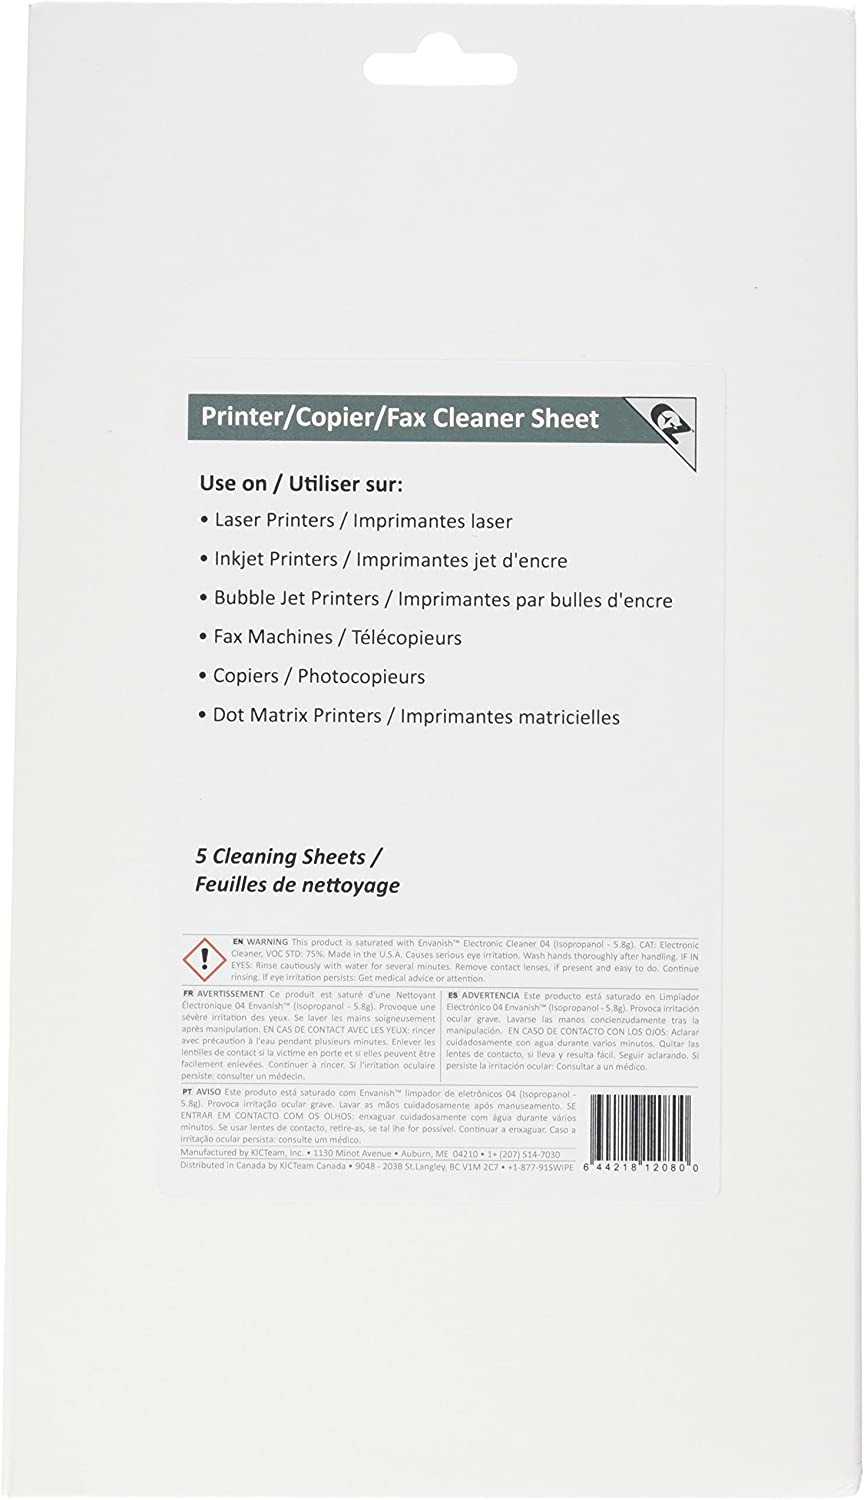 3K2-PCFF5 Three Pack EZ Printer/Copier/Fax Cleaner Sheet (15) by Waffletechnology